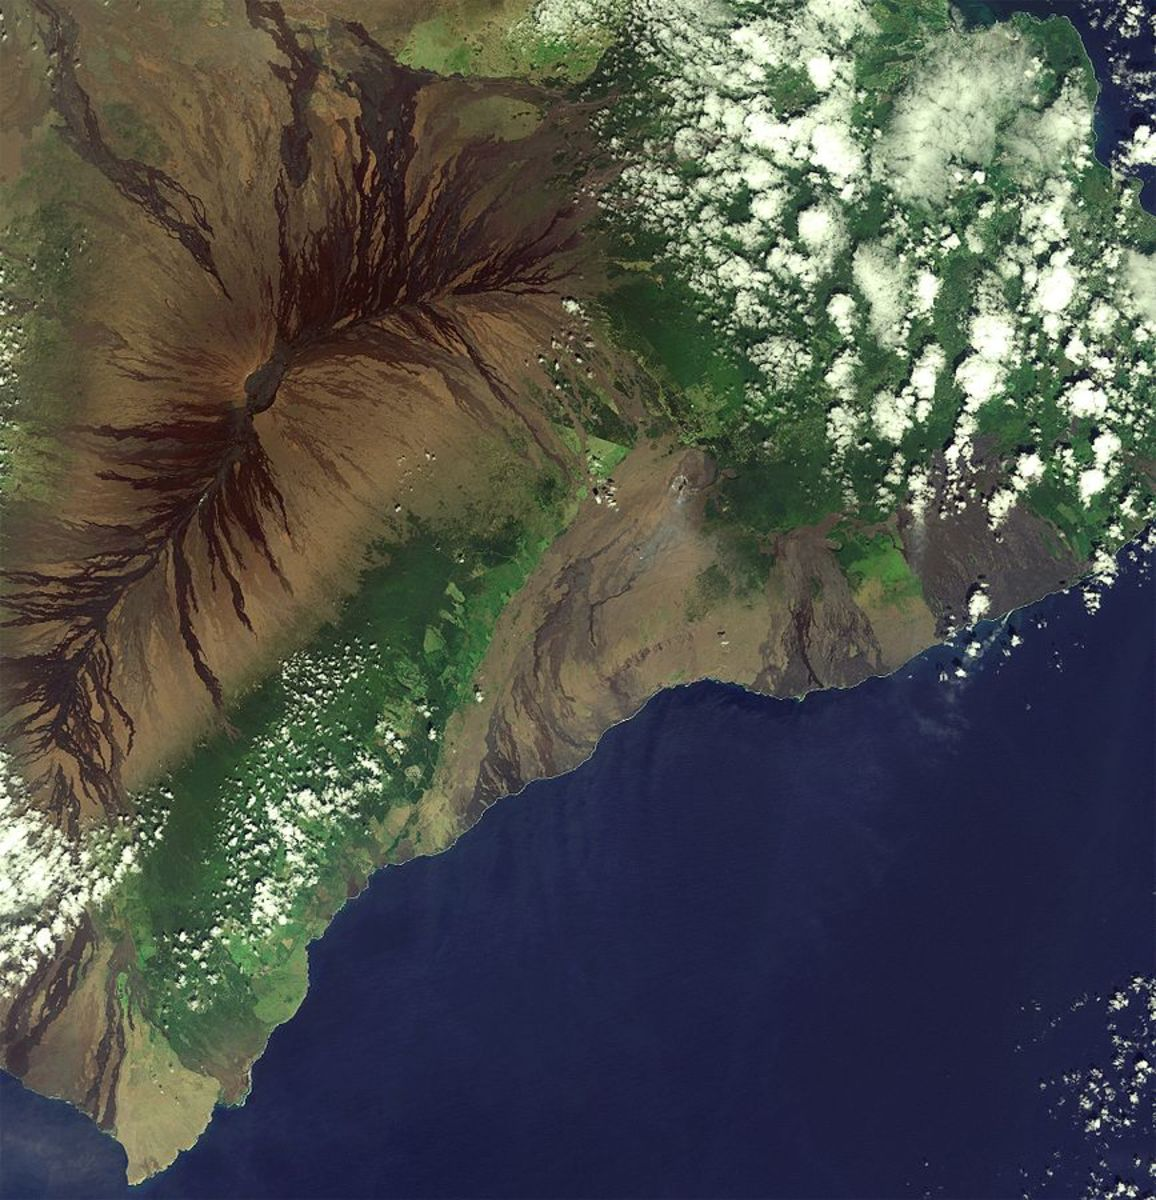 The volcanic landscape of the largest island in the Hawaiian archipelago is pictured in this Sentinel-2A satellite image.